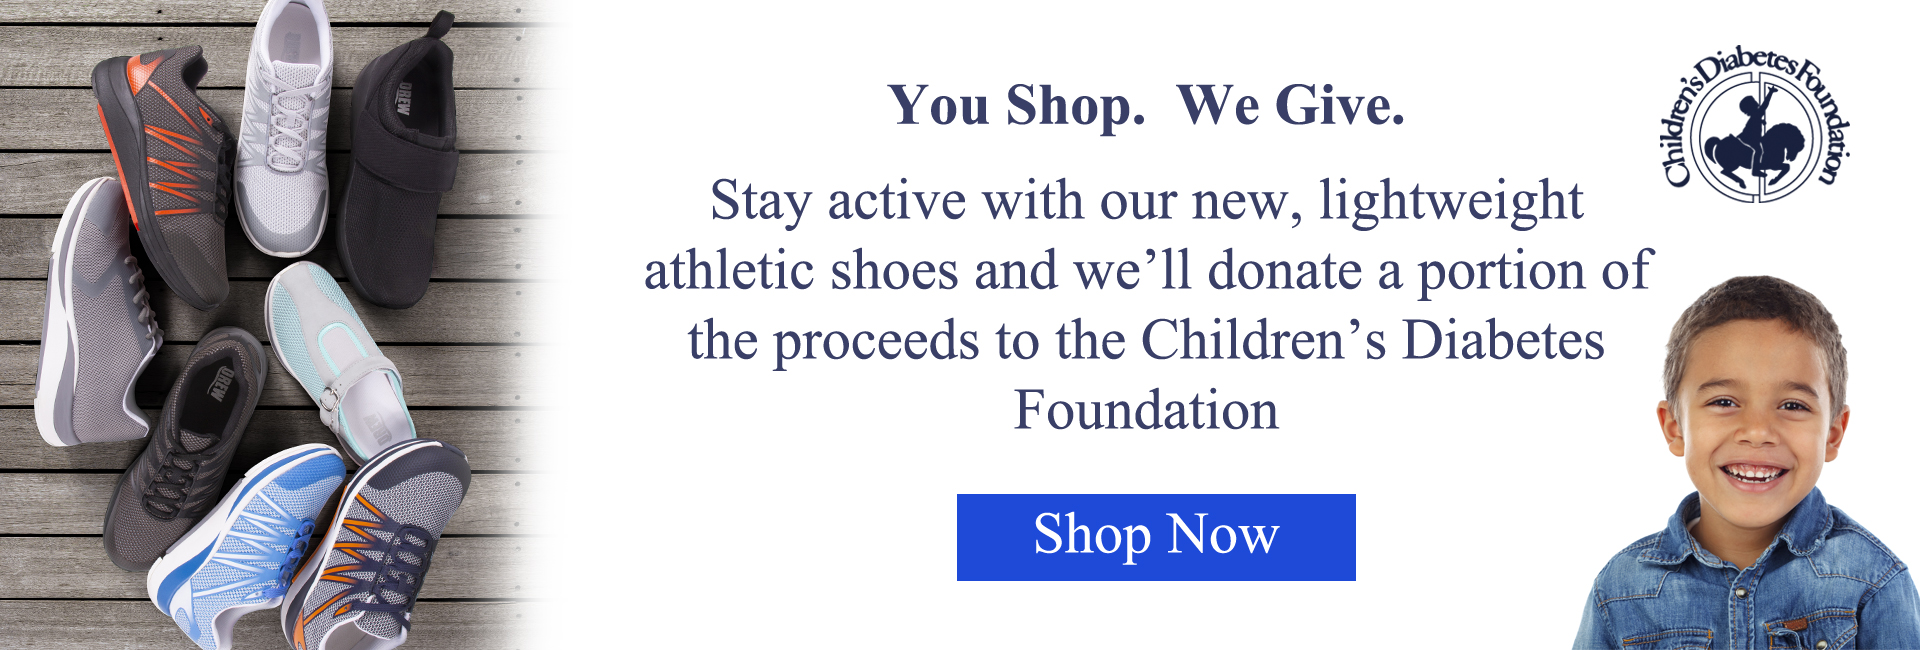 You Shop. We Give.